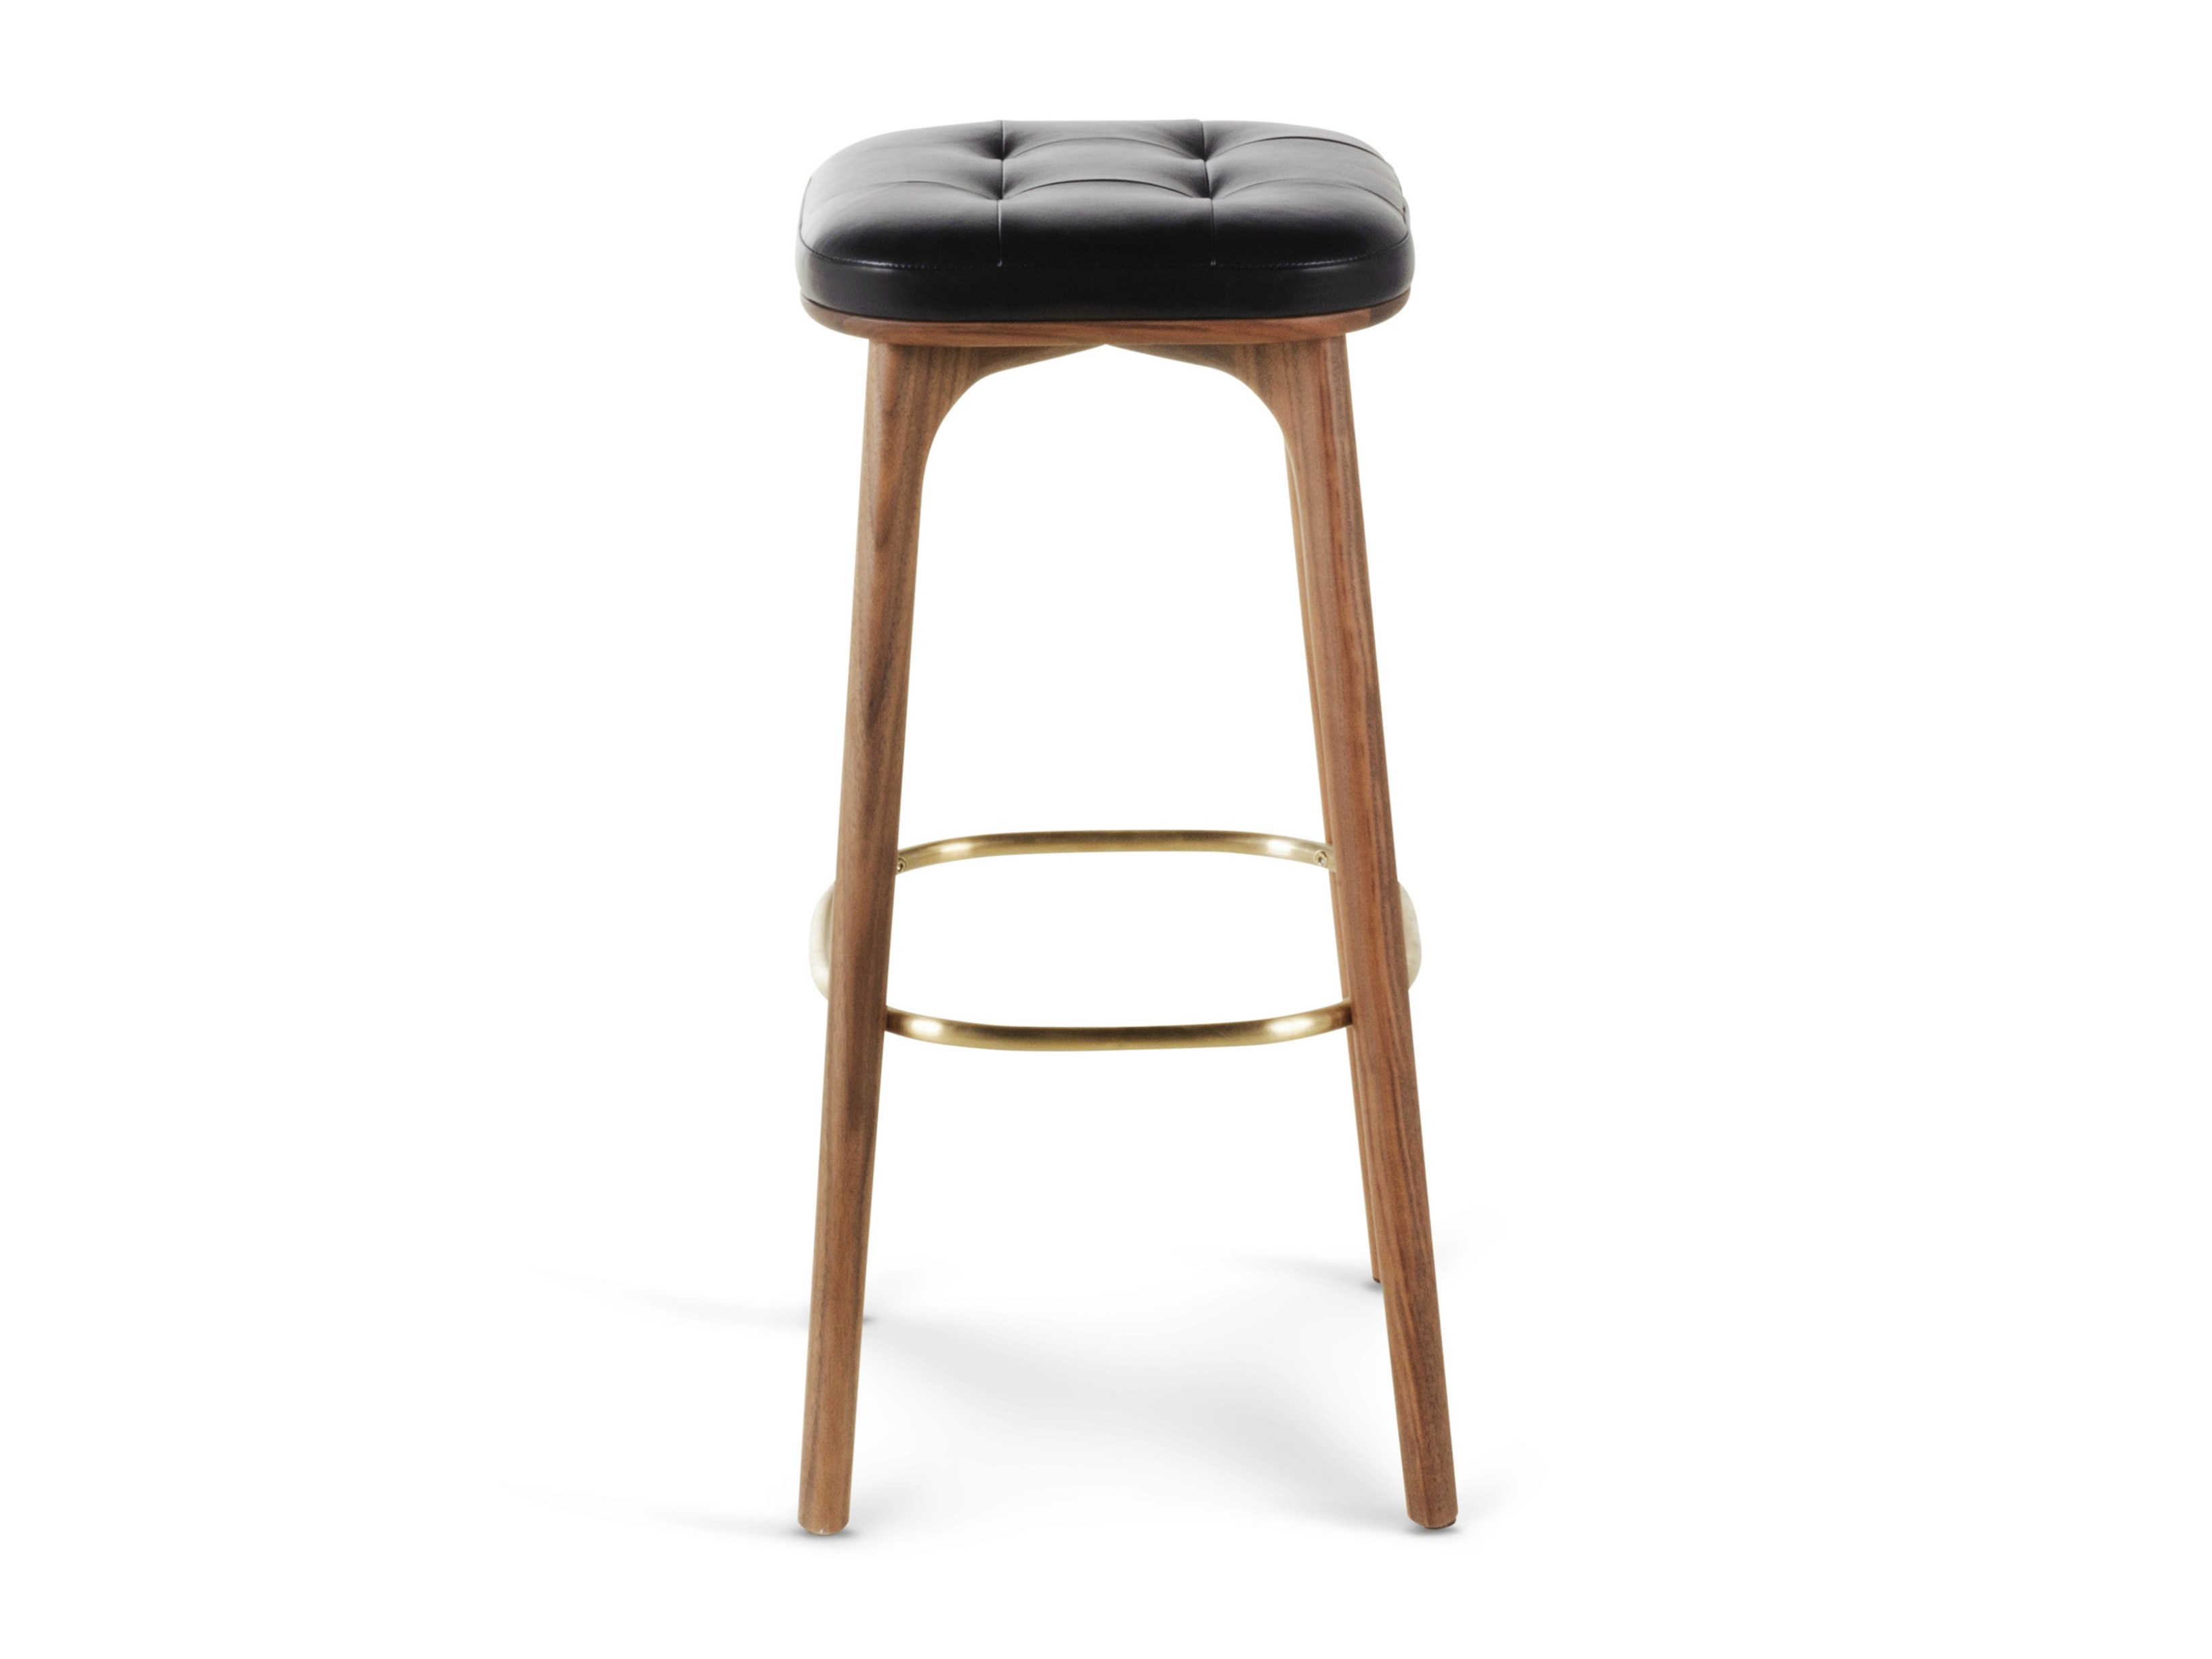 #714B34 High Wooden Barstool With Footrest UTILITY STOOL H760 STELLAR WORKS with 3266x2449 px of Brand New High Wooden Stool 24493266 pic @ avoidforclosure.info